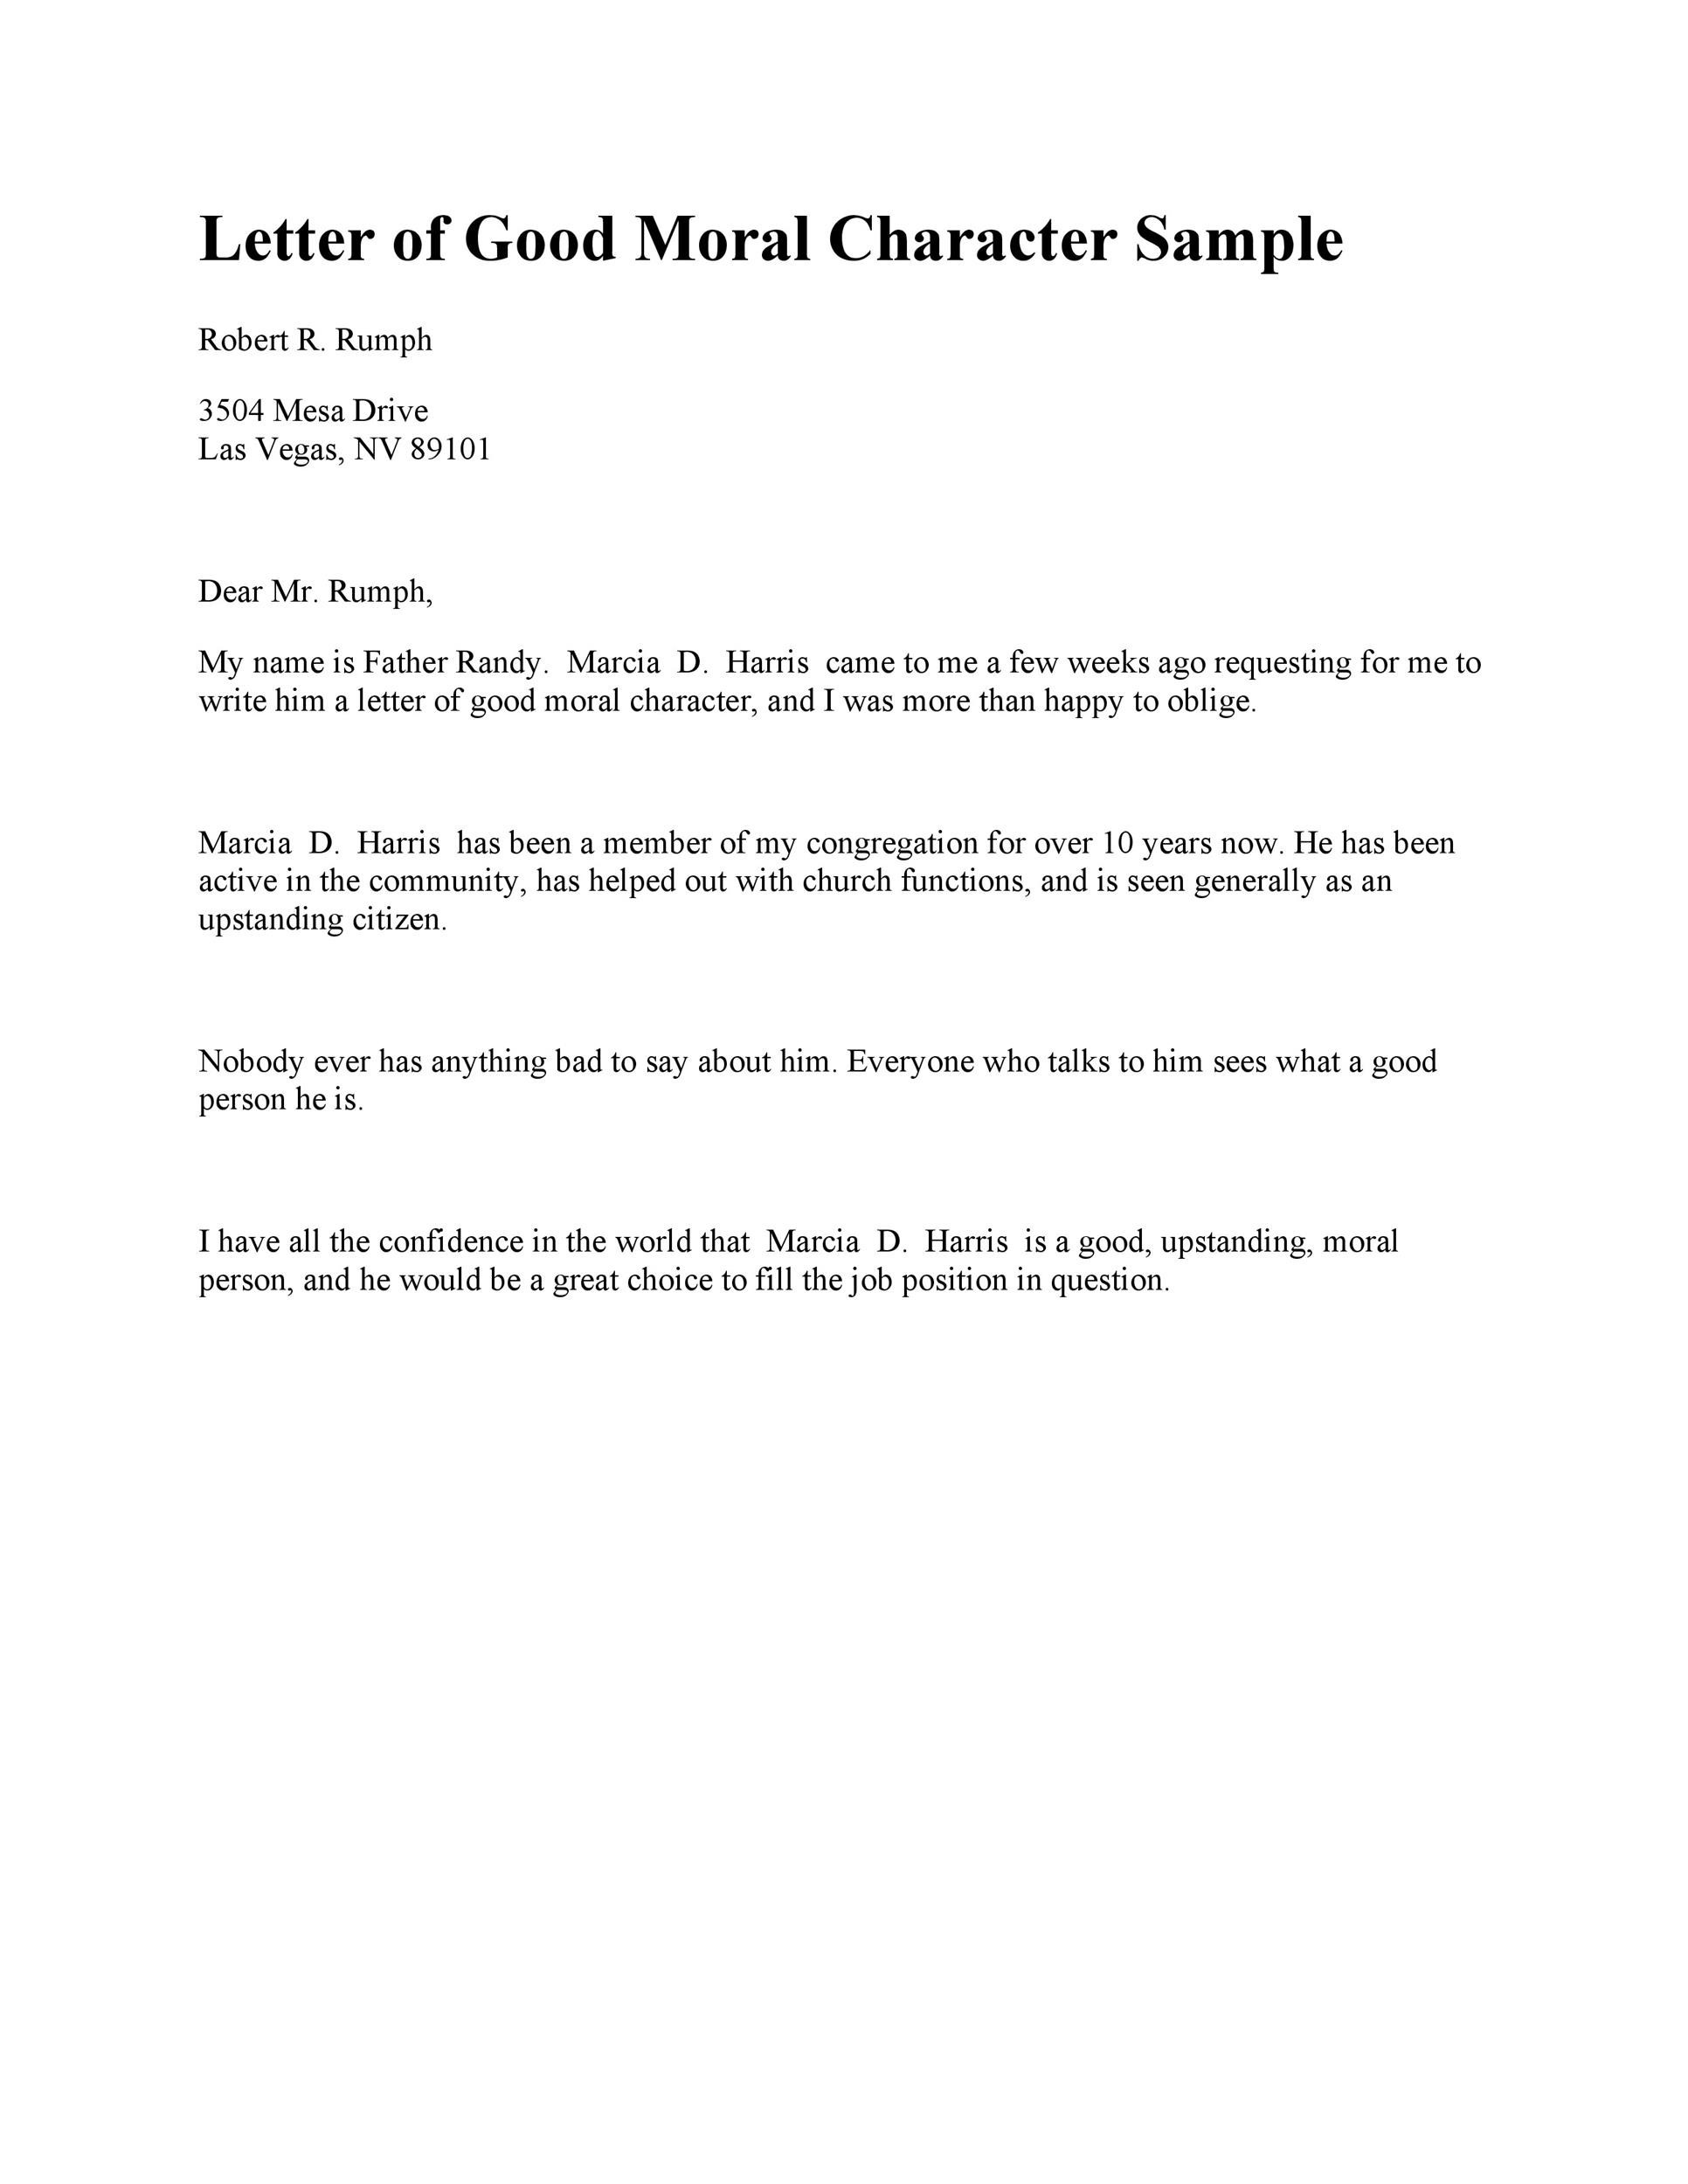 Immigration Character Reference Letter For Family Member from templatelab.com